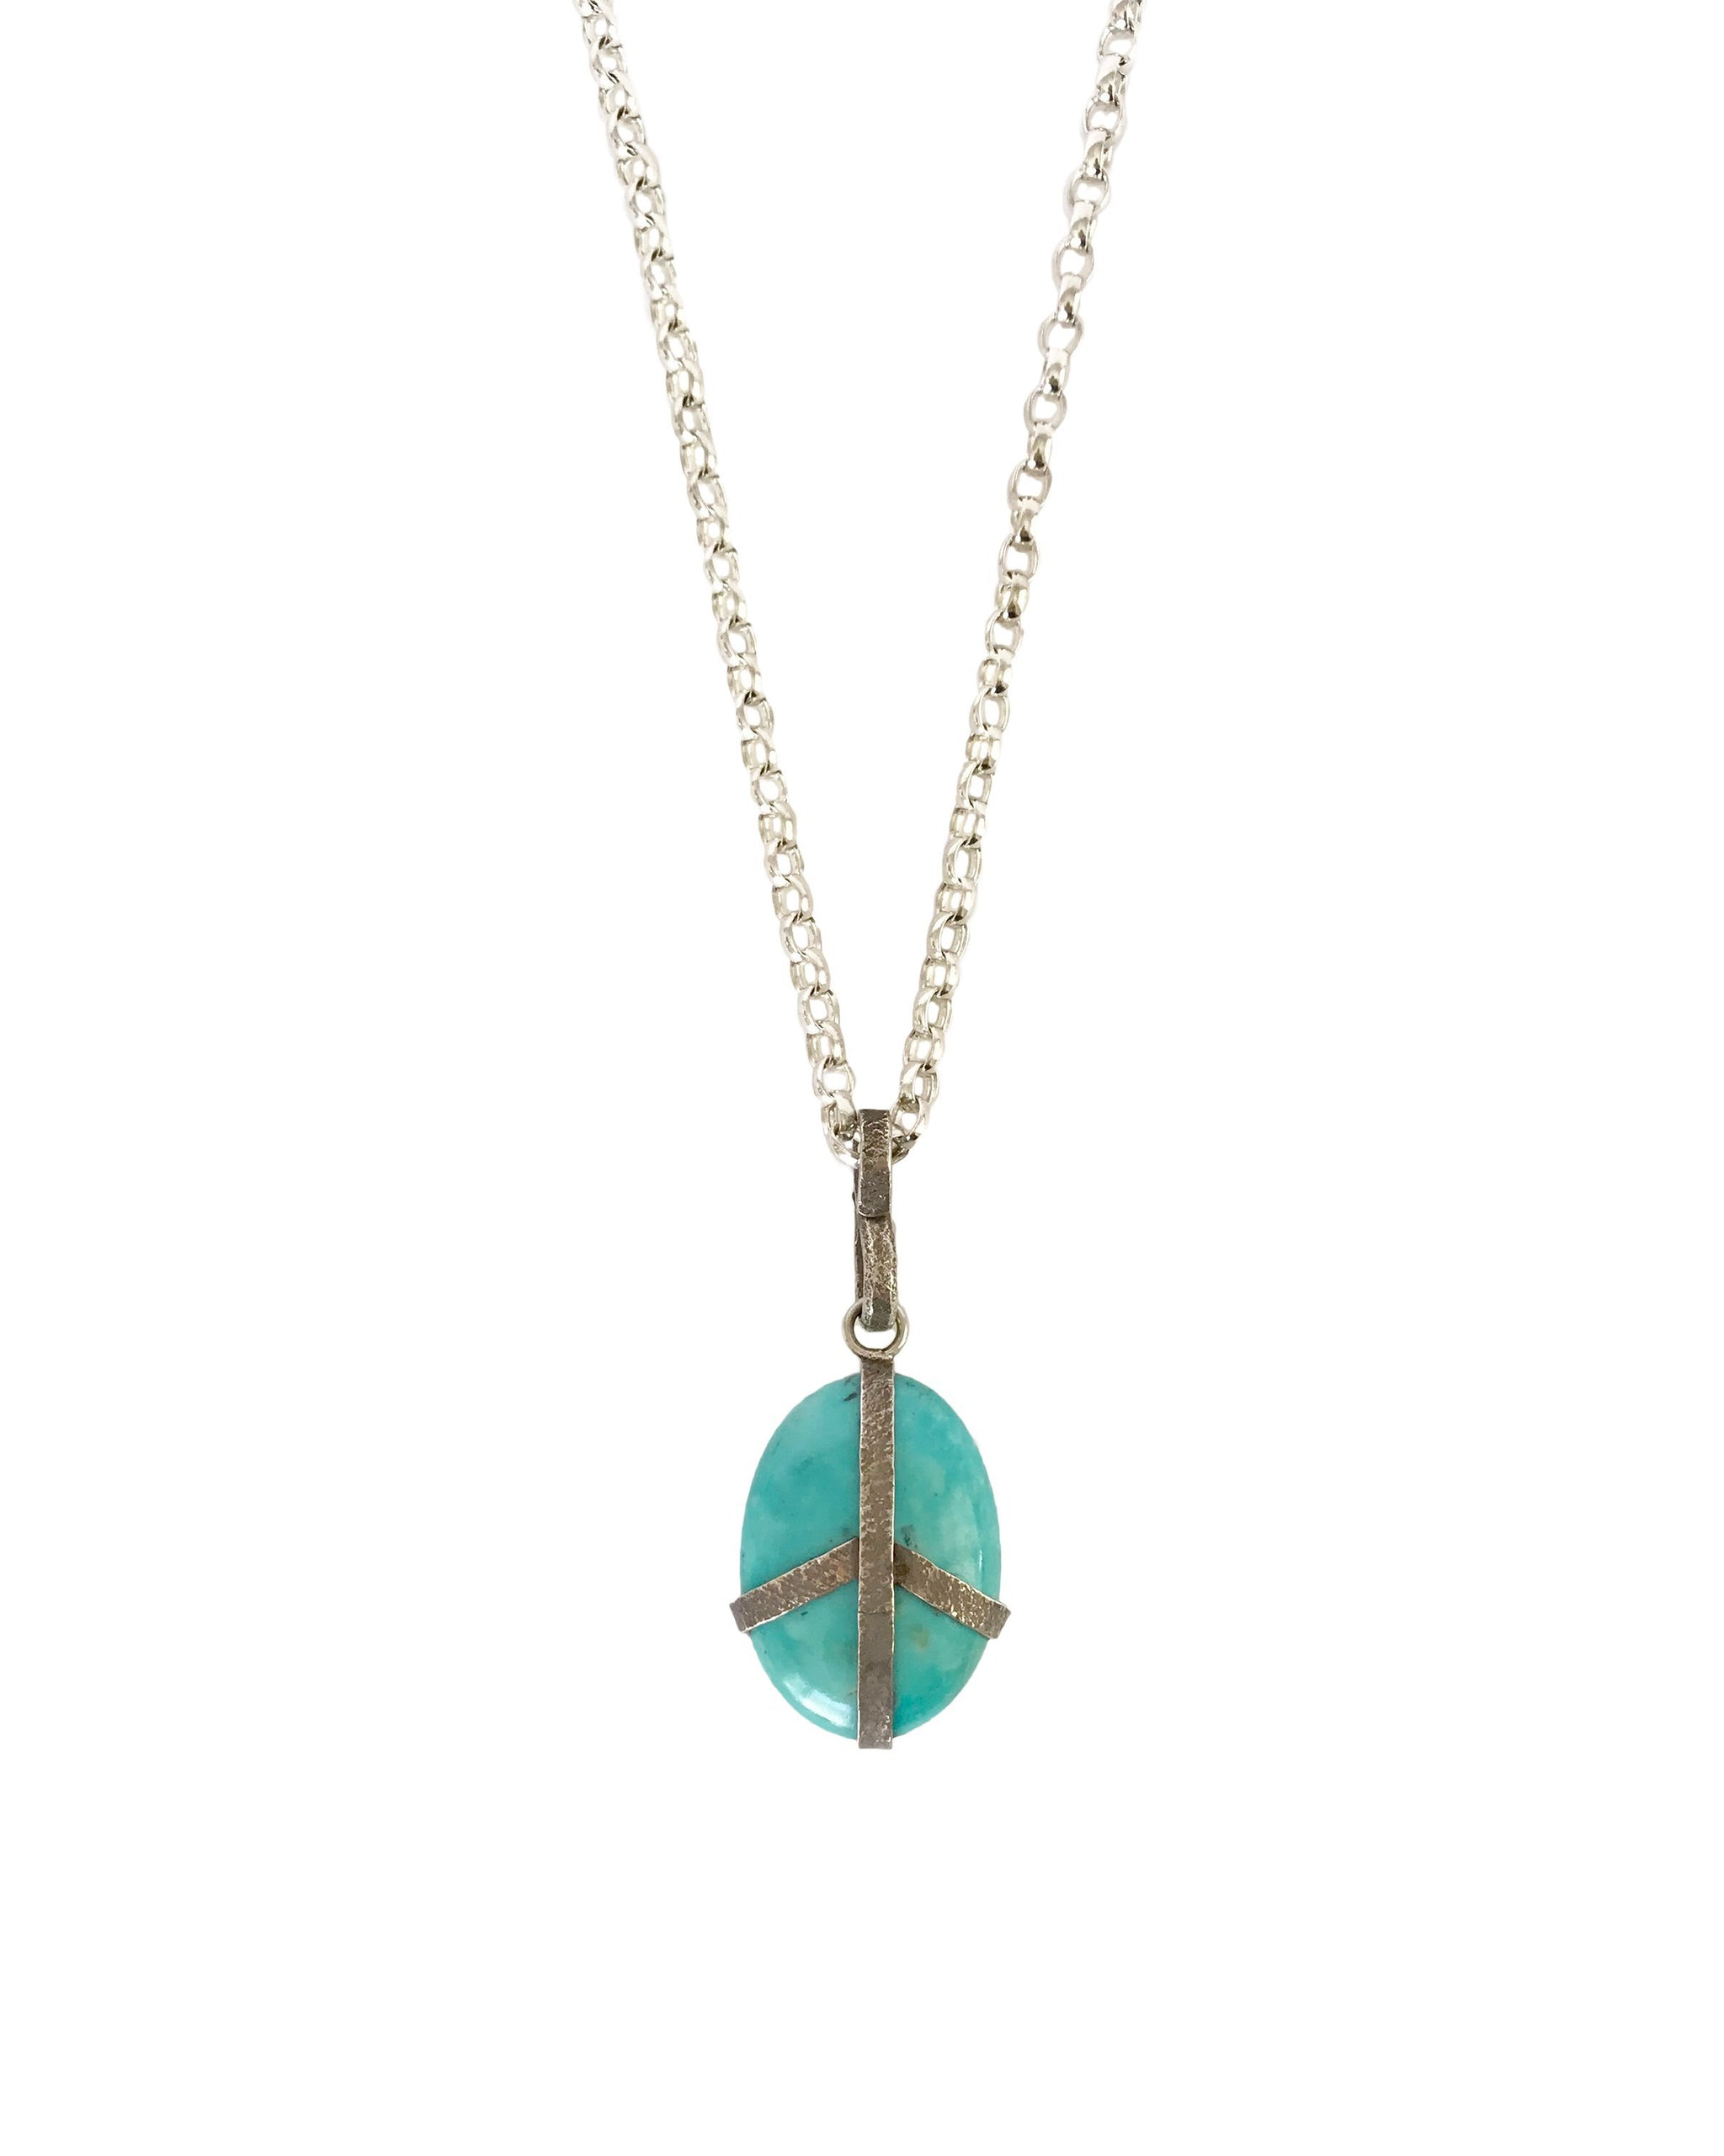 LA PAZ NECKLACE - TURQUOISE + TOBACCO